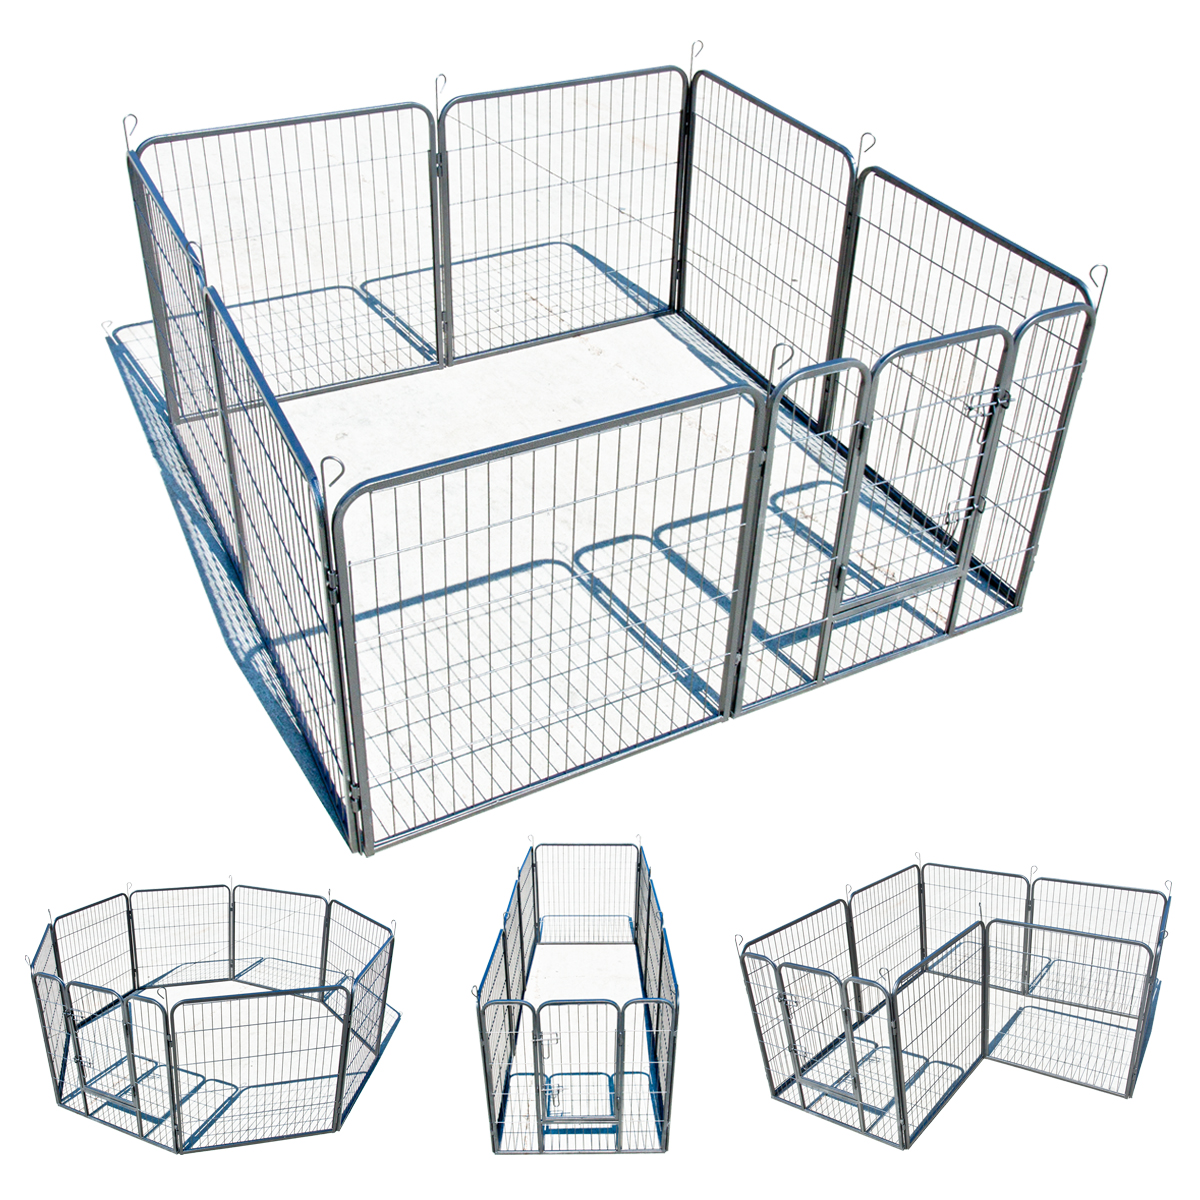 32 8 Panel Dog Cat Barrier Fence Metal Playpen Kennel Cage Pet Outdoor